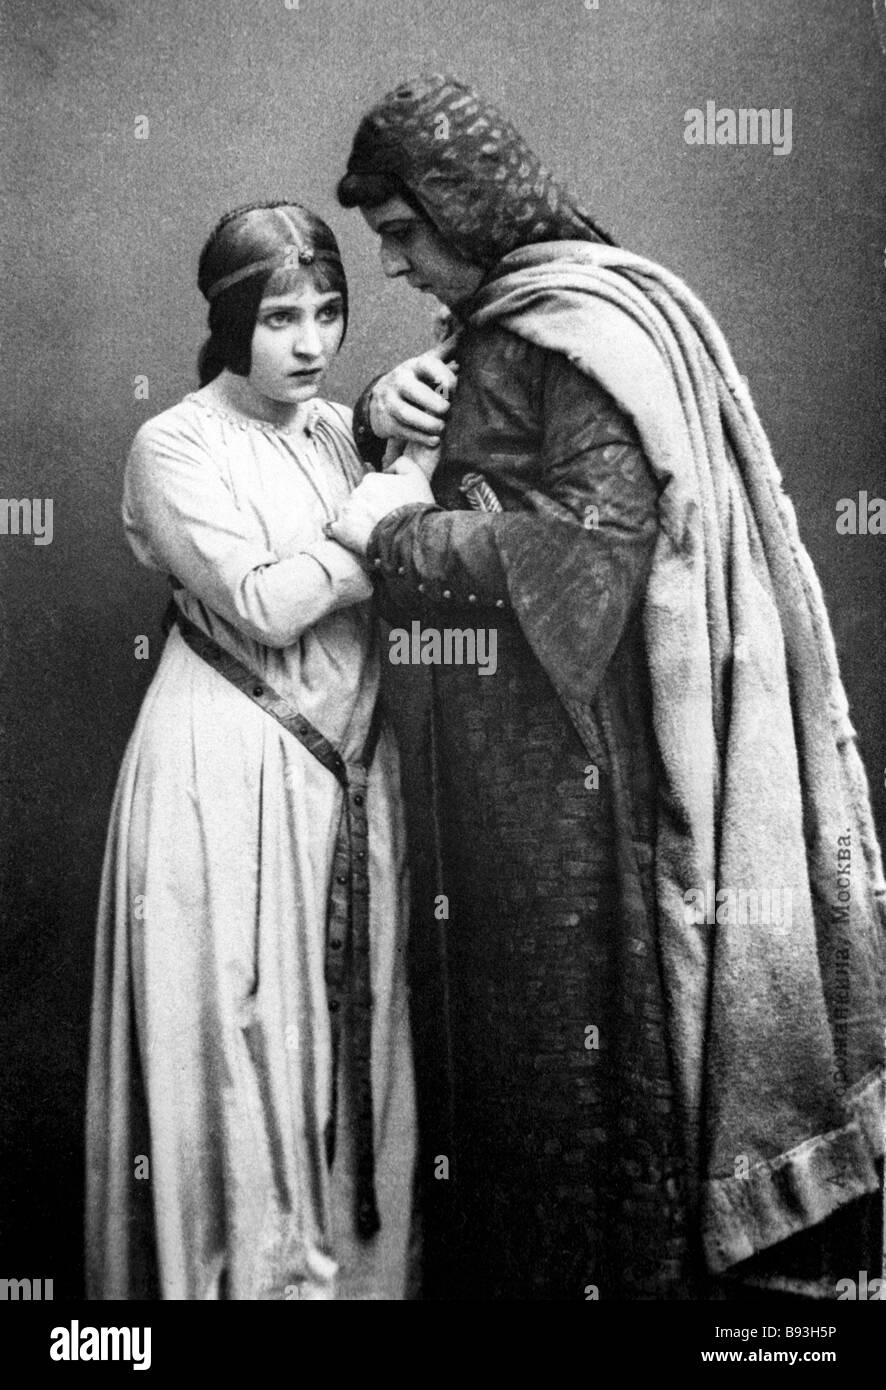 Hamlet by William Shakespeare performed in the Moscow Art Theater 1912 The play was Staged by the English director - Stock Image